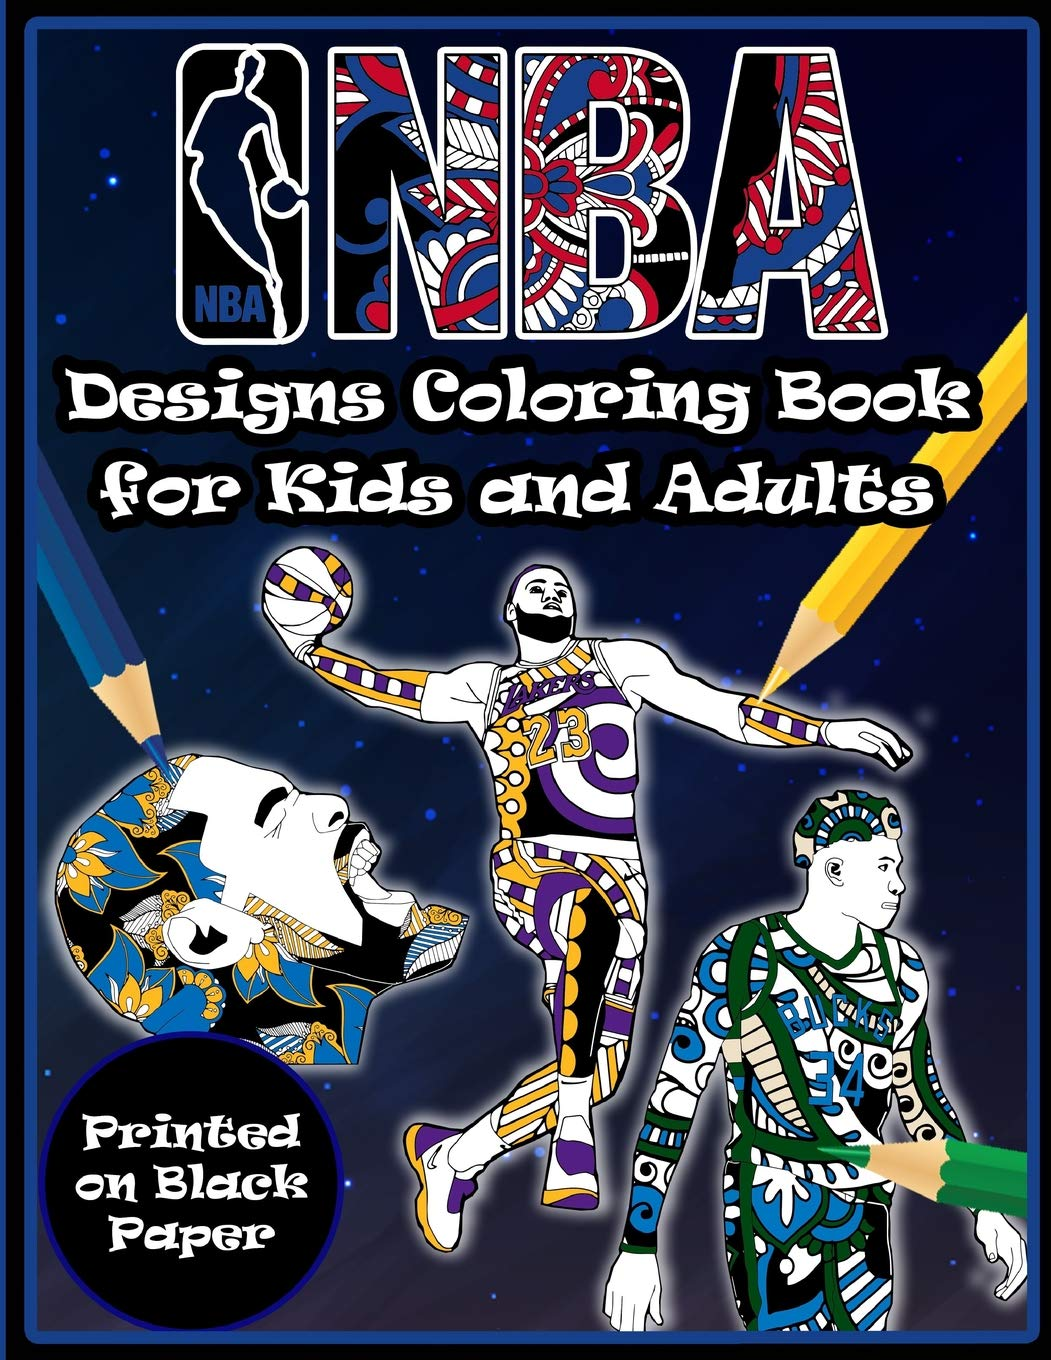 Nba Designs Coloring Book For Kids And Adults  Printed On Black